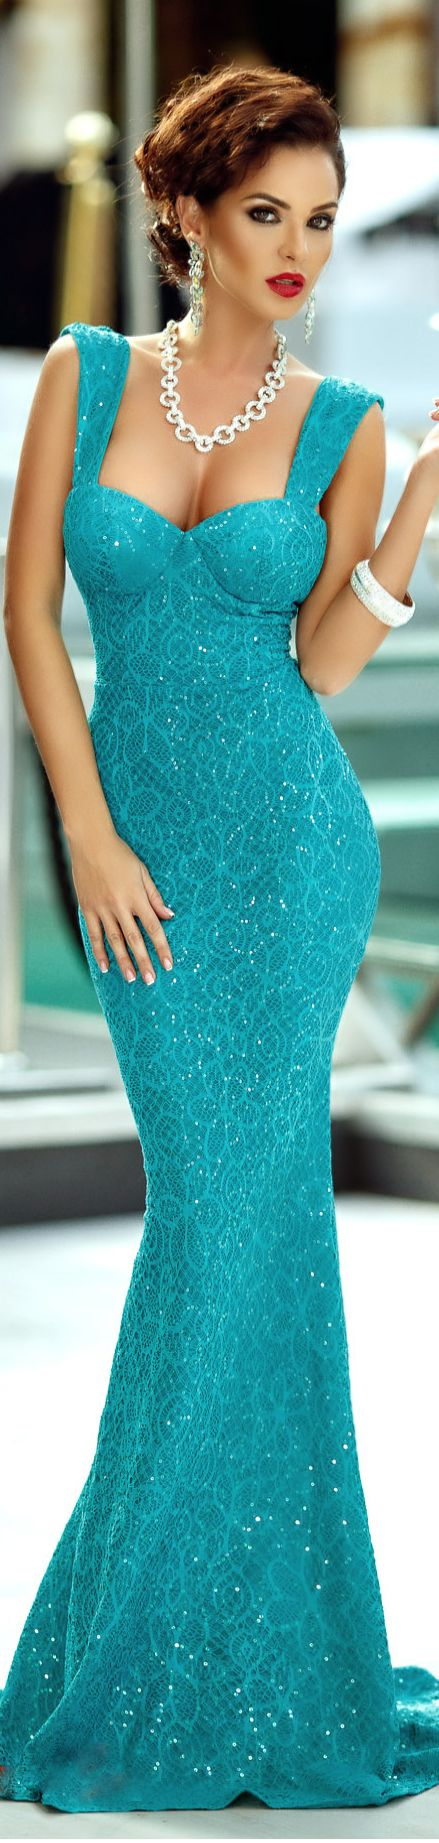 dress with sequined lace turquoise #promdress http://www.wedding-dressuk.co.uk/prom-dresses-uk63_1